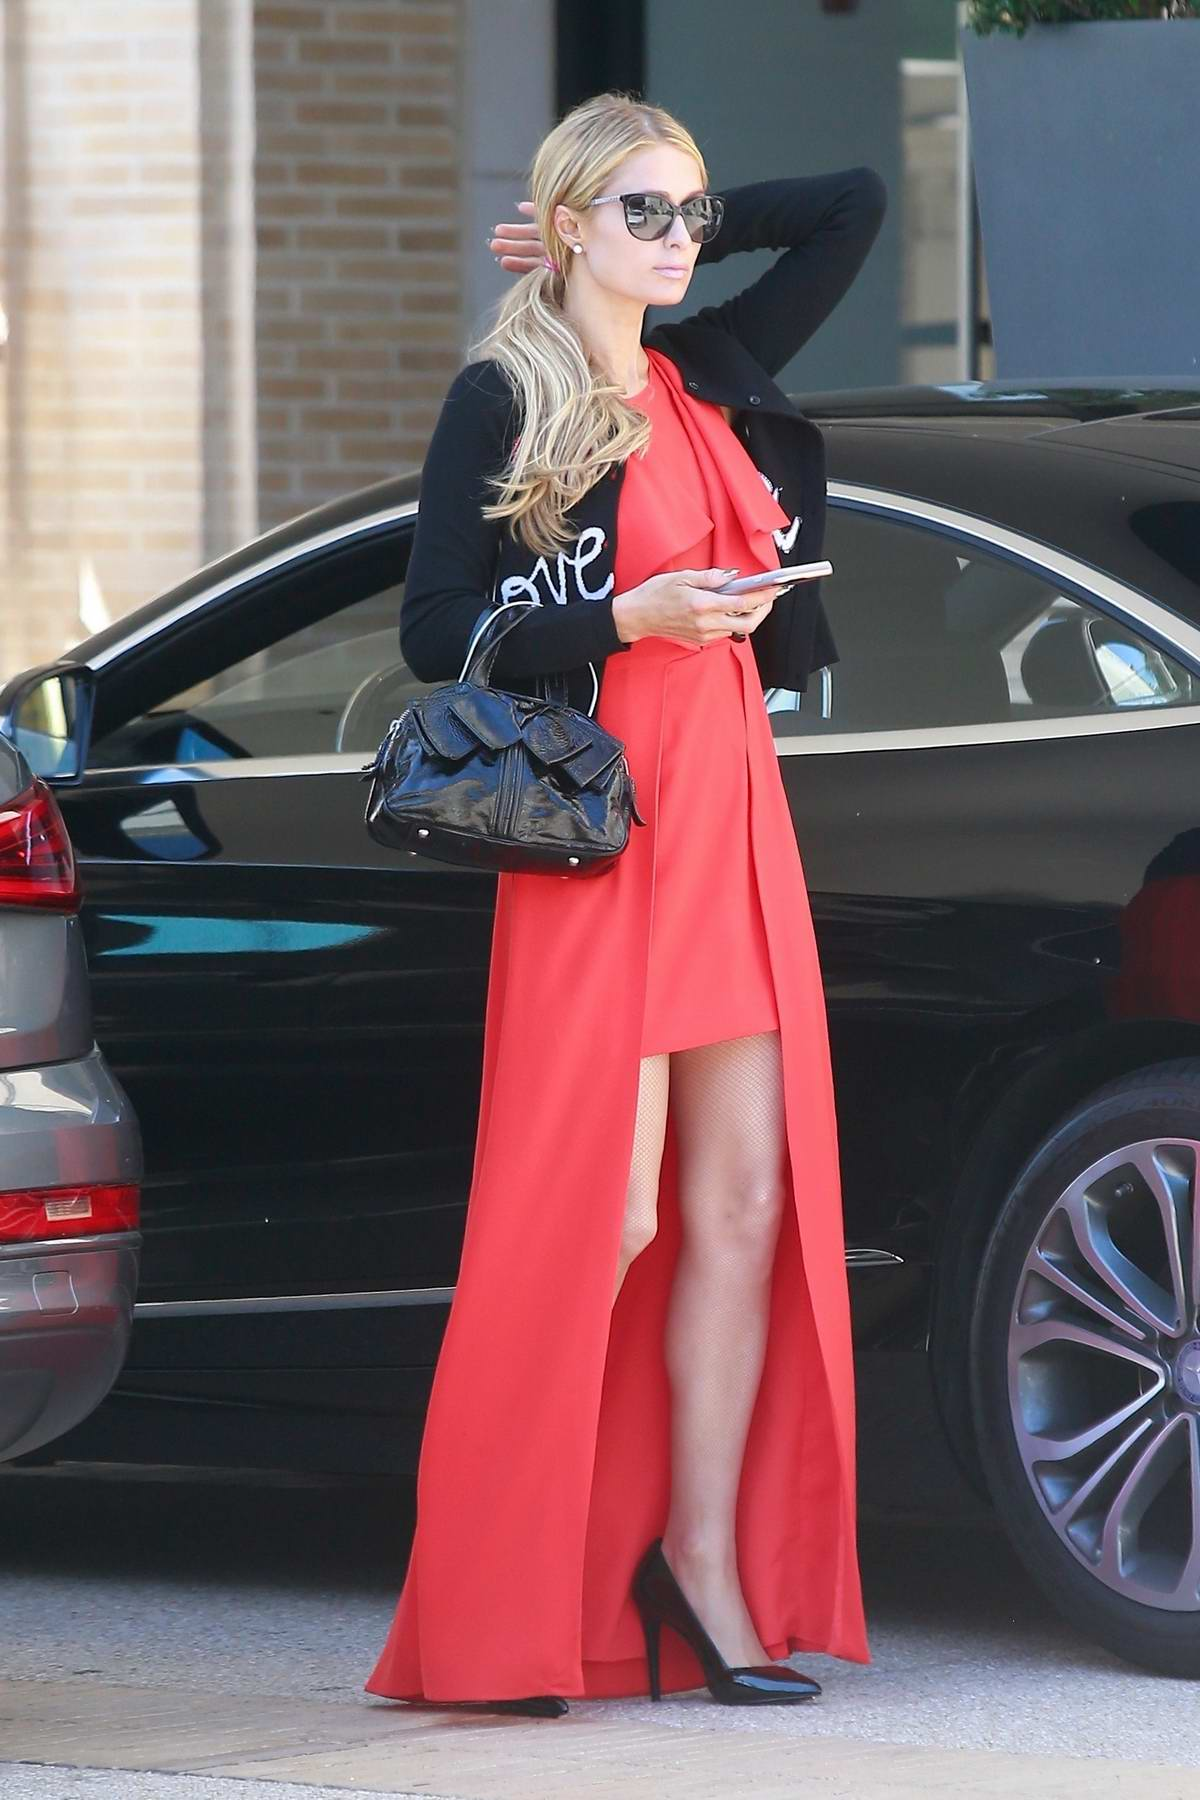 Paris Hilton stands out in a bright red dress as she goes shopping at Barneys New York